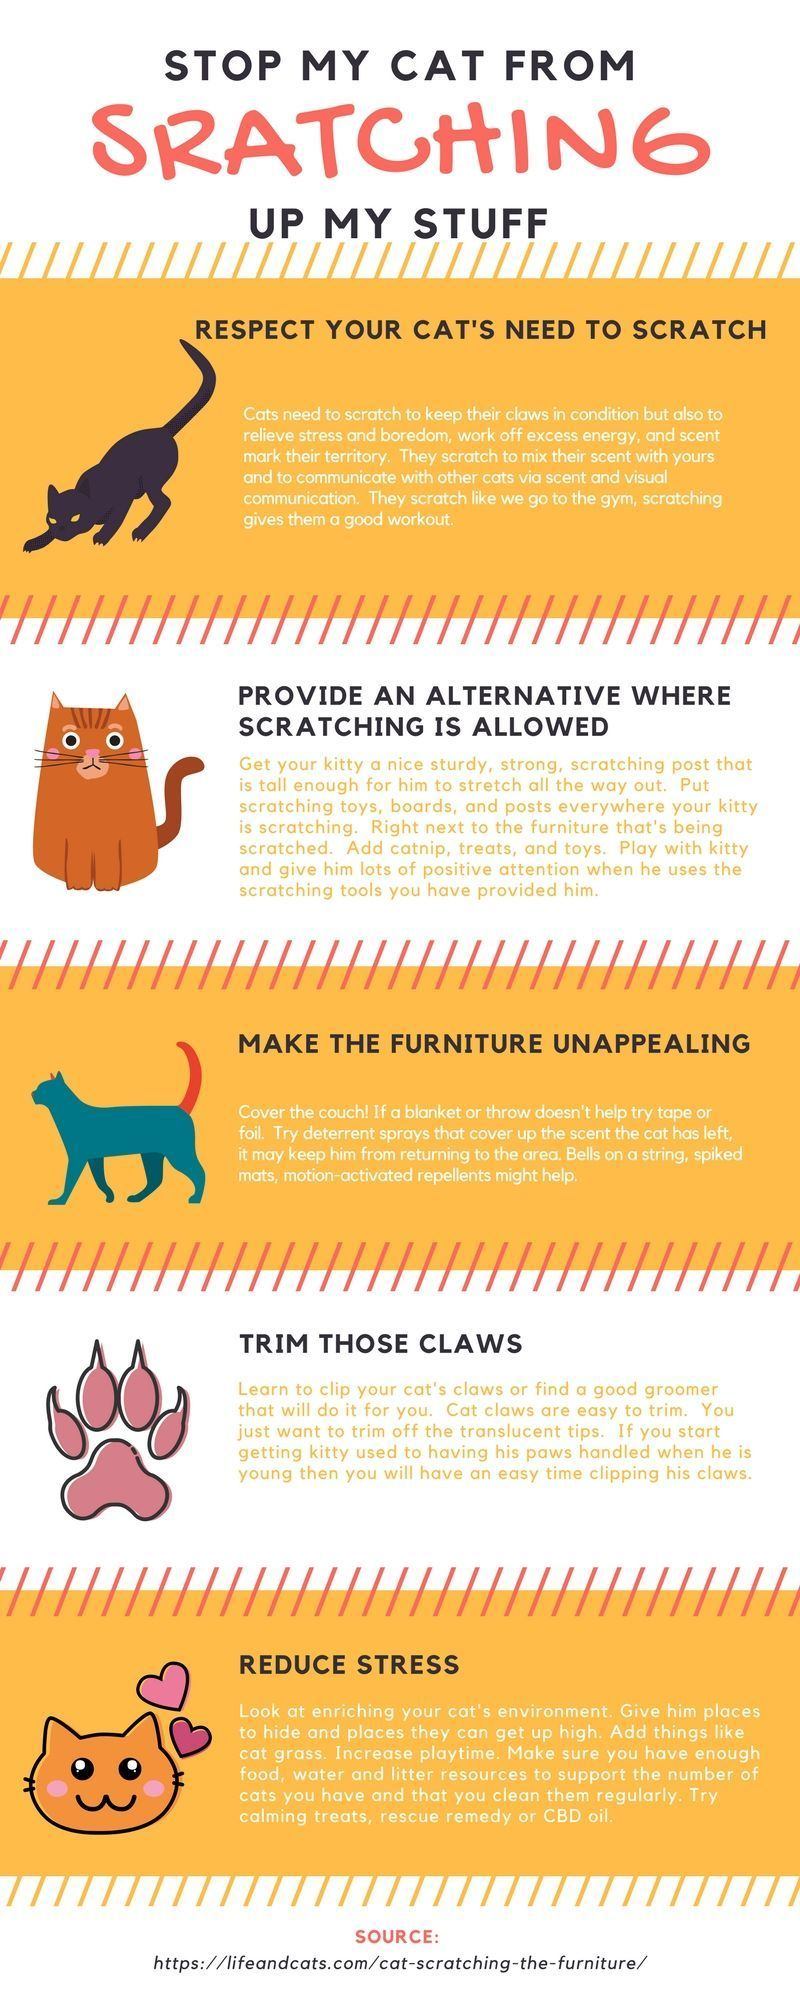 Infographic How To Stop A Cat From Scratching Up Your Stuff Prevent Scratching Train Kitty To Use Scrat Cat Scratchers Cat Training Scratching Cat Training